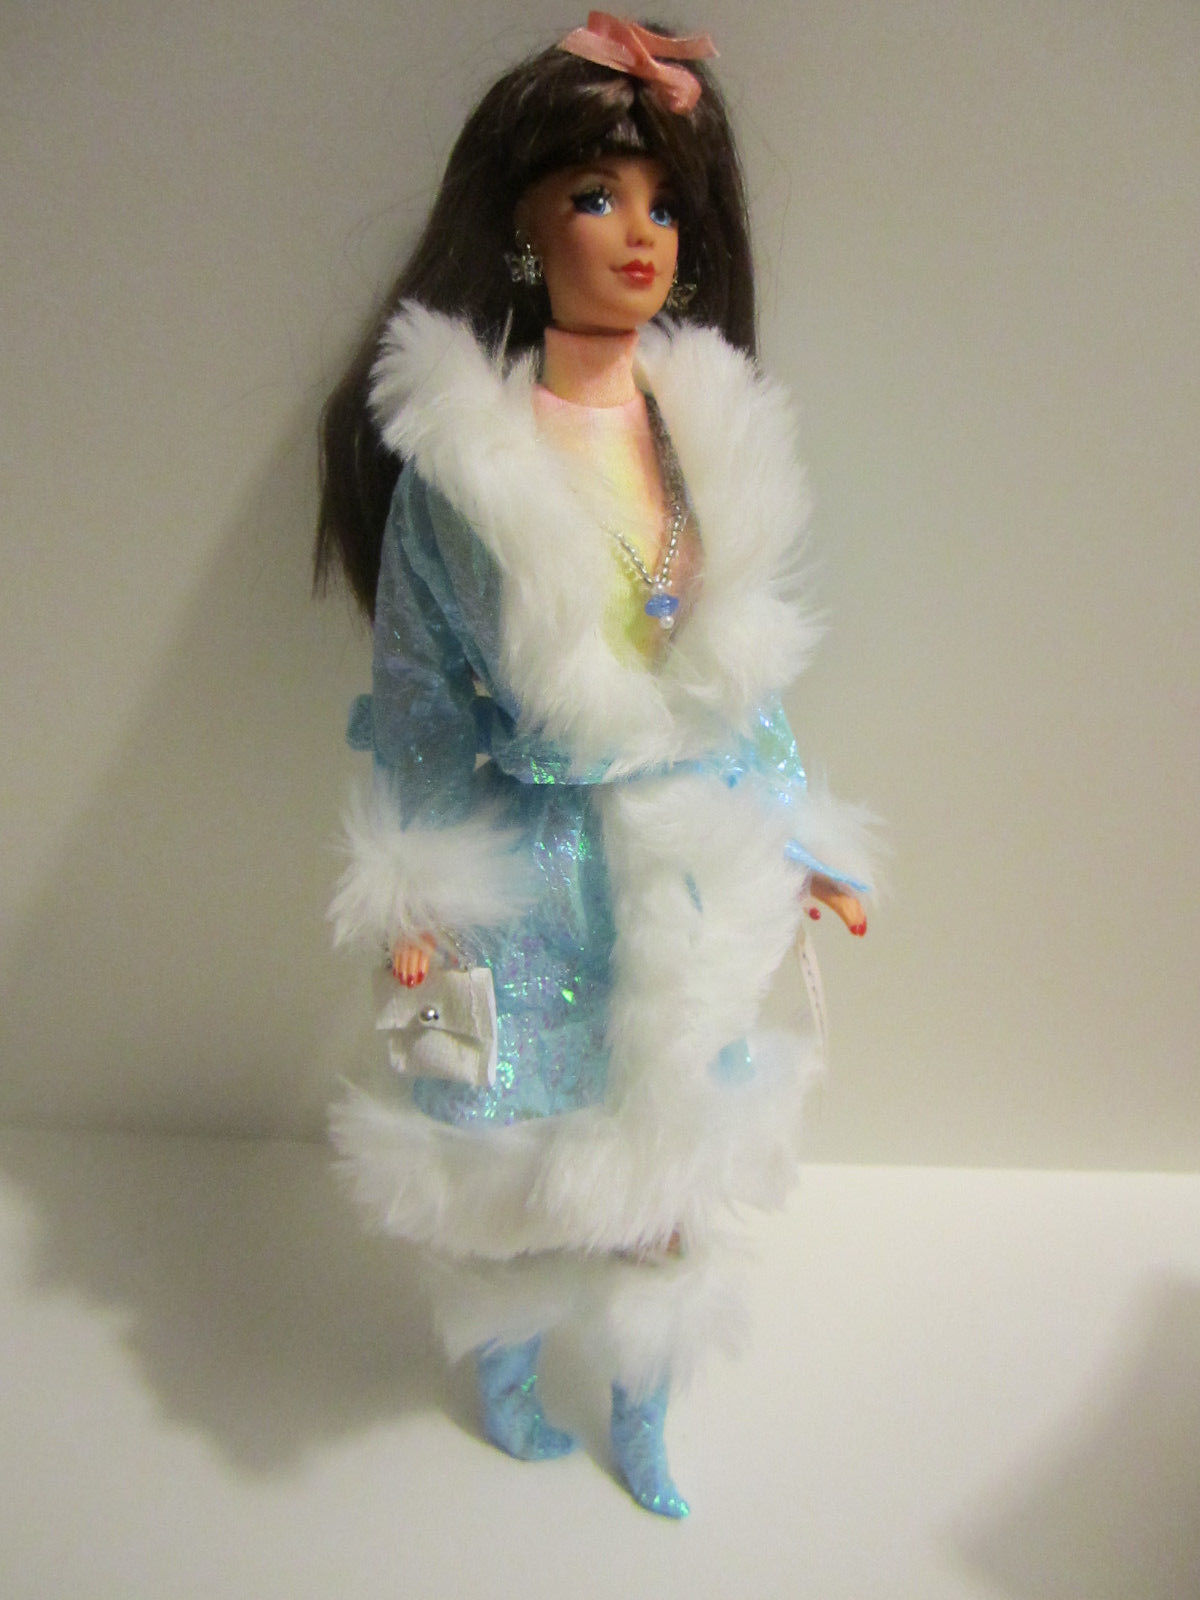 Collector Barbie Blue Mini Go Maxi OOAK by Angie Gill GILLYGALS